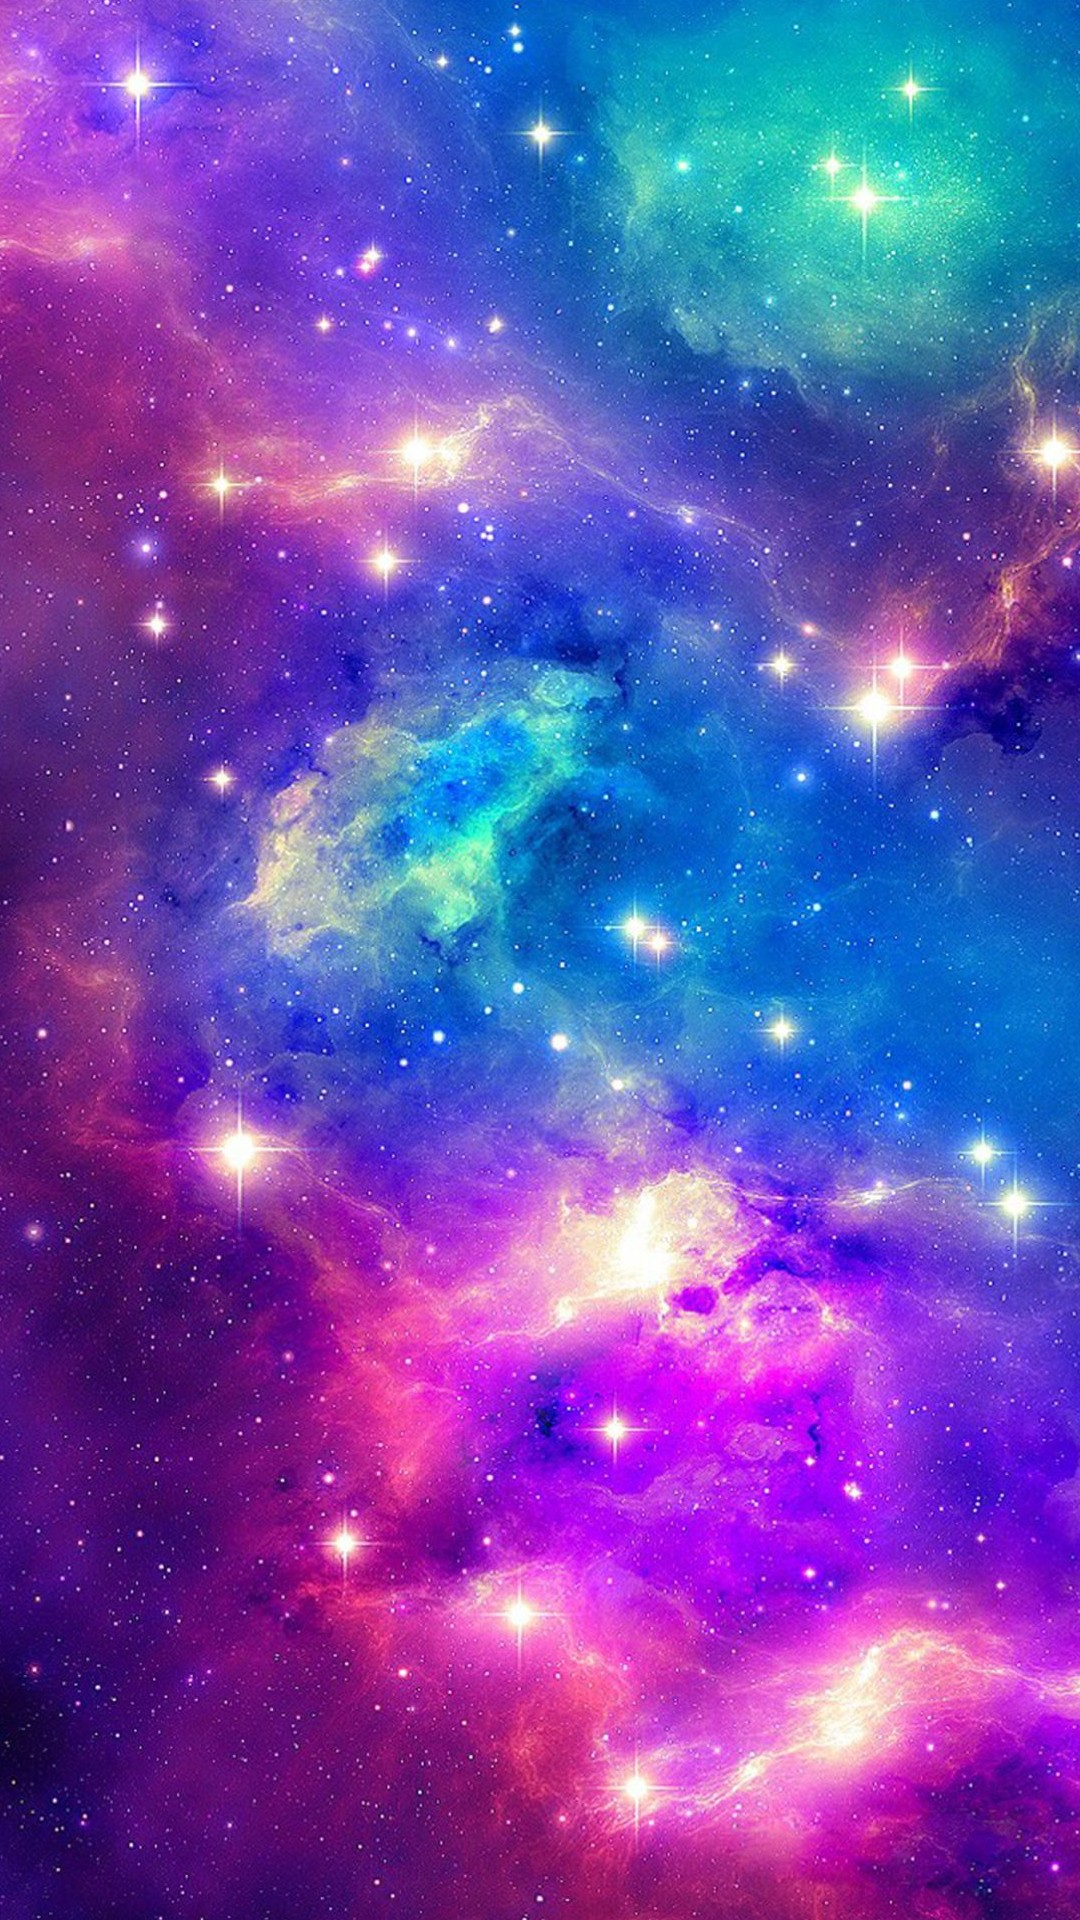 Colorful Galaxy Wallpaper Tumblr (page 2) - Pics about space